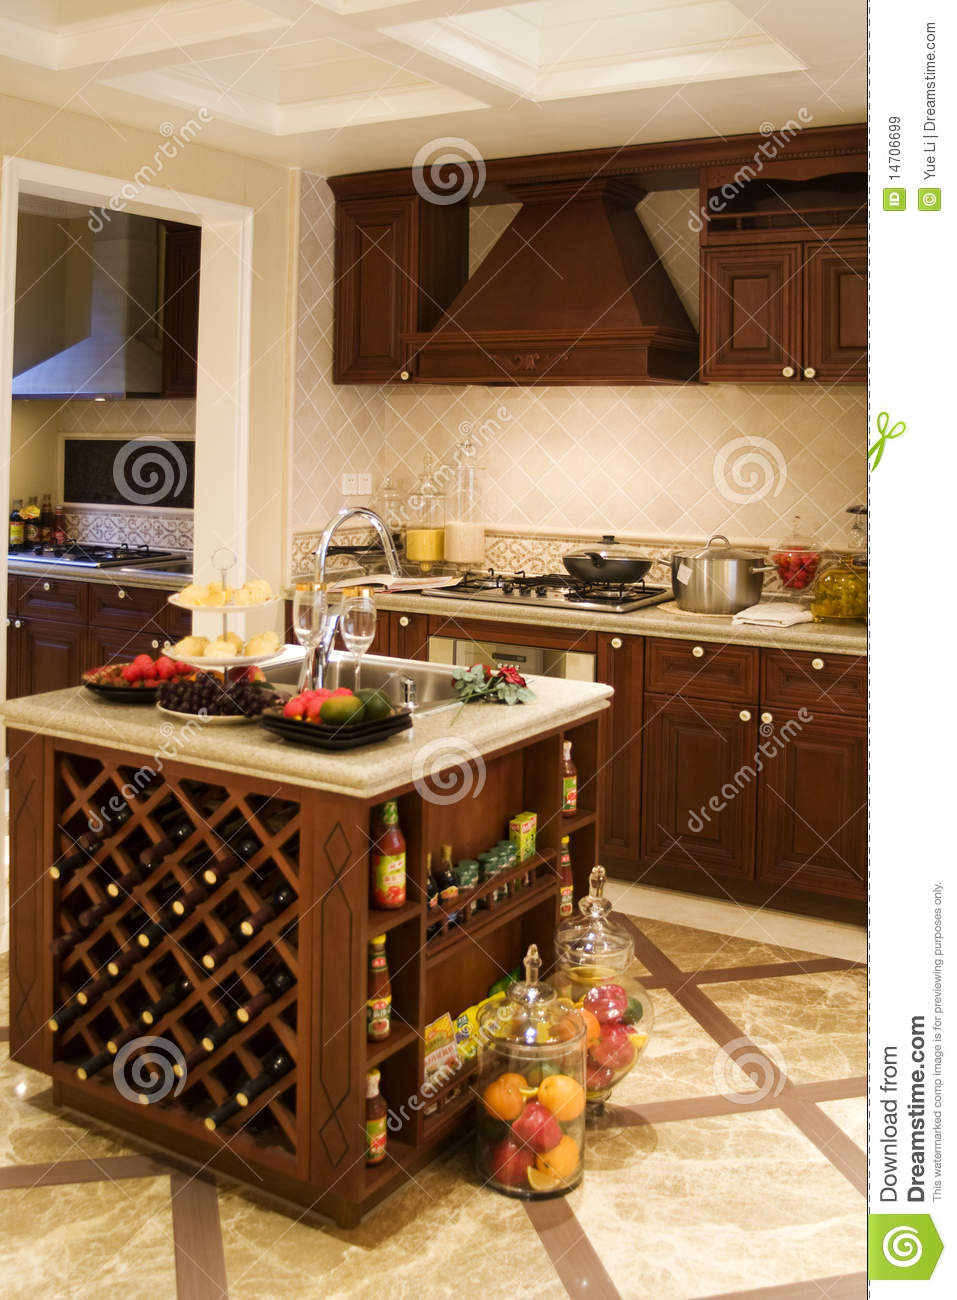 Nice Kitchen Nice Kitchen Royalty Free Stock Images Image 14706699